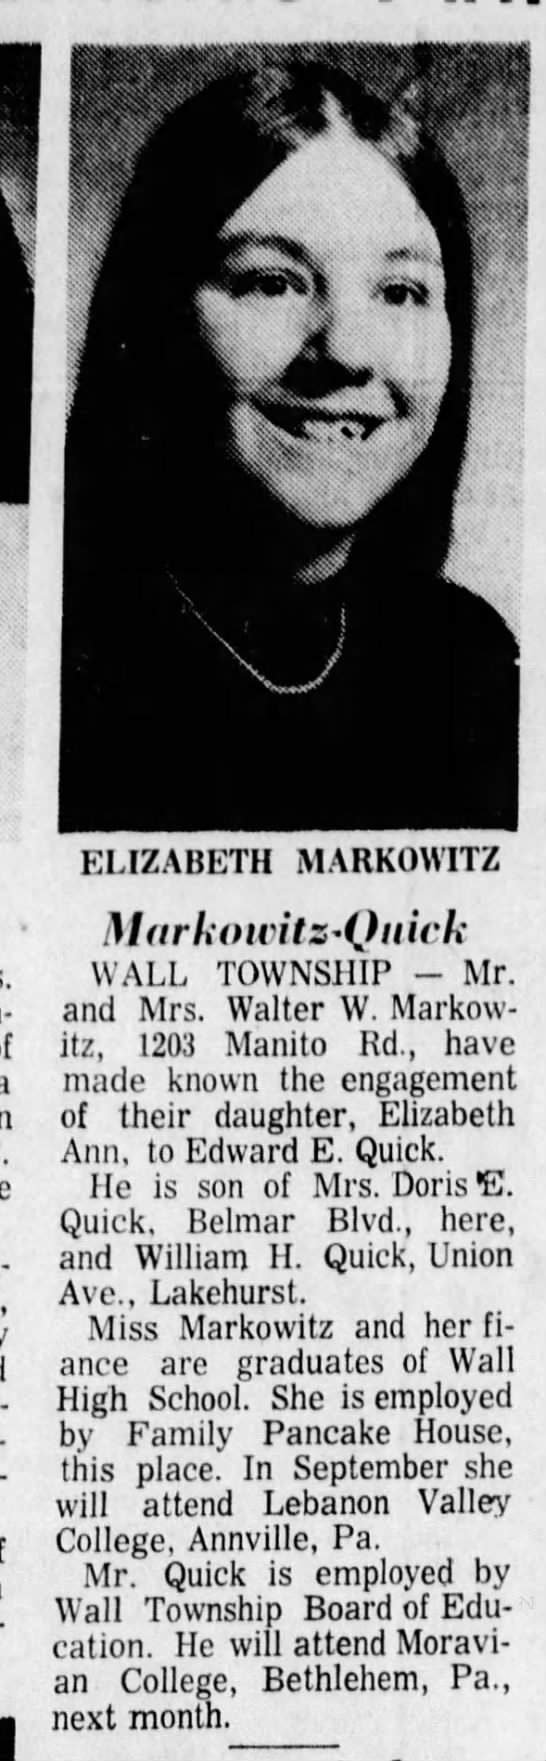 Edward E Quick engaged to Elizabeth Markowitz